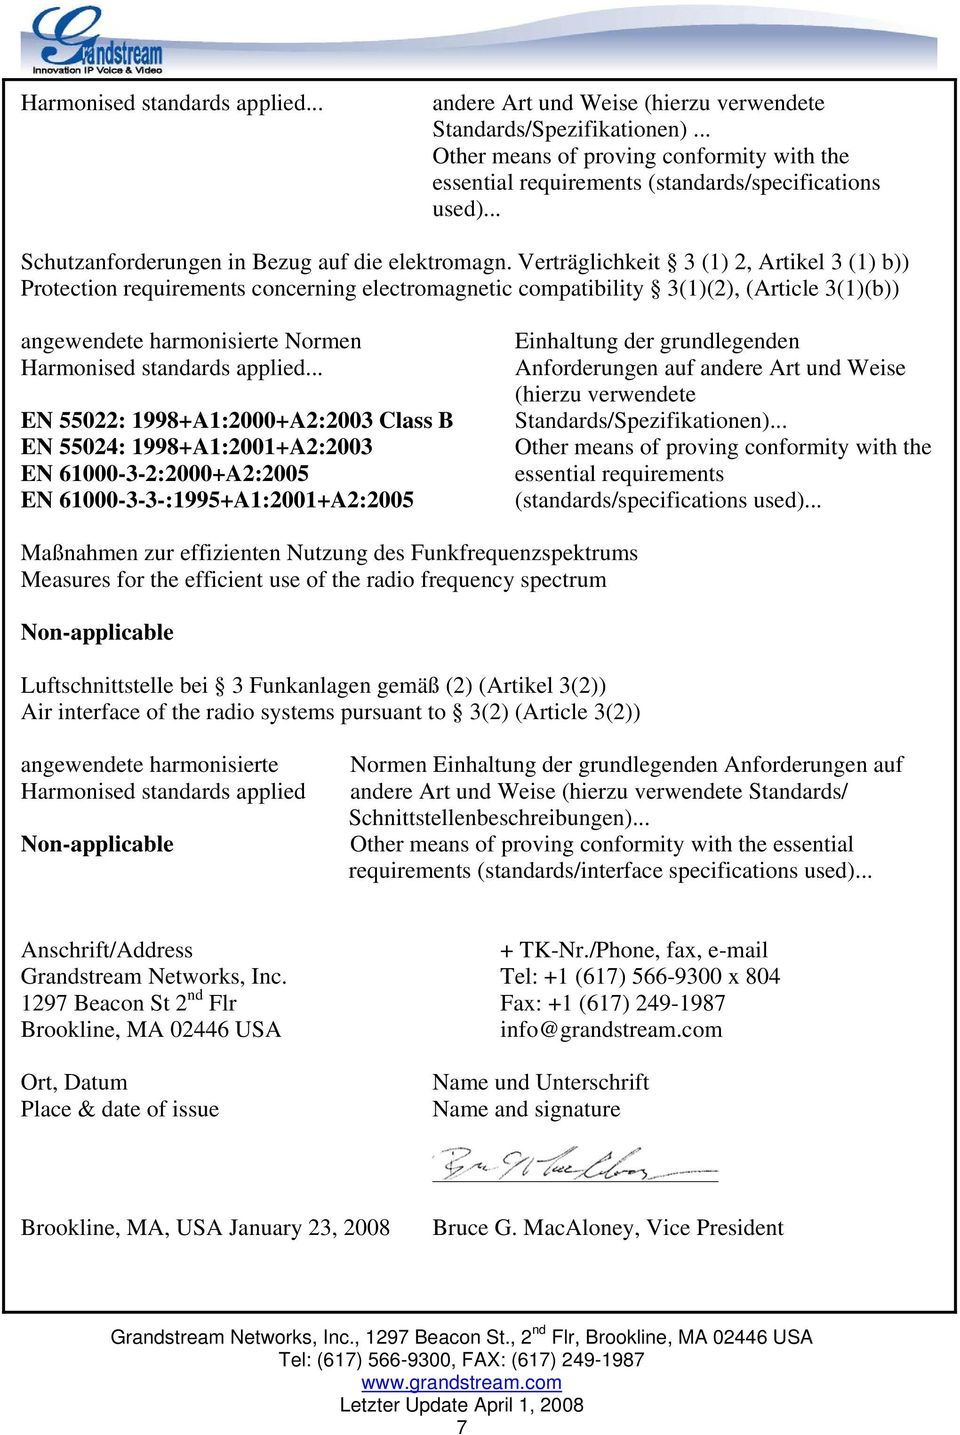 Verträglichkeit 3 (1) 2, Artikel 3 (1) b)) Protection requirements concerning electromagnetic compatibility 3(1)(2), (Article 3(1)(b)) angewendete harmonisierte Normen Harmonised standards applied.